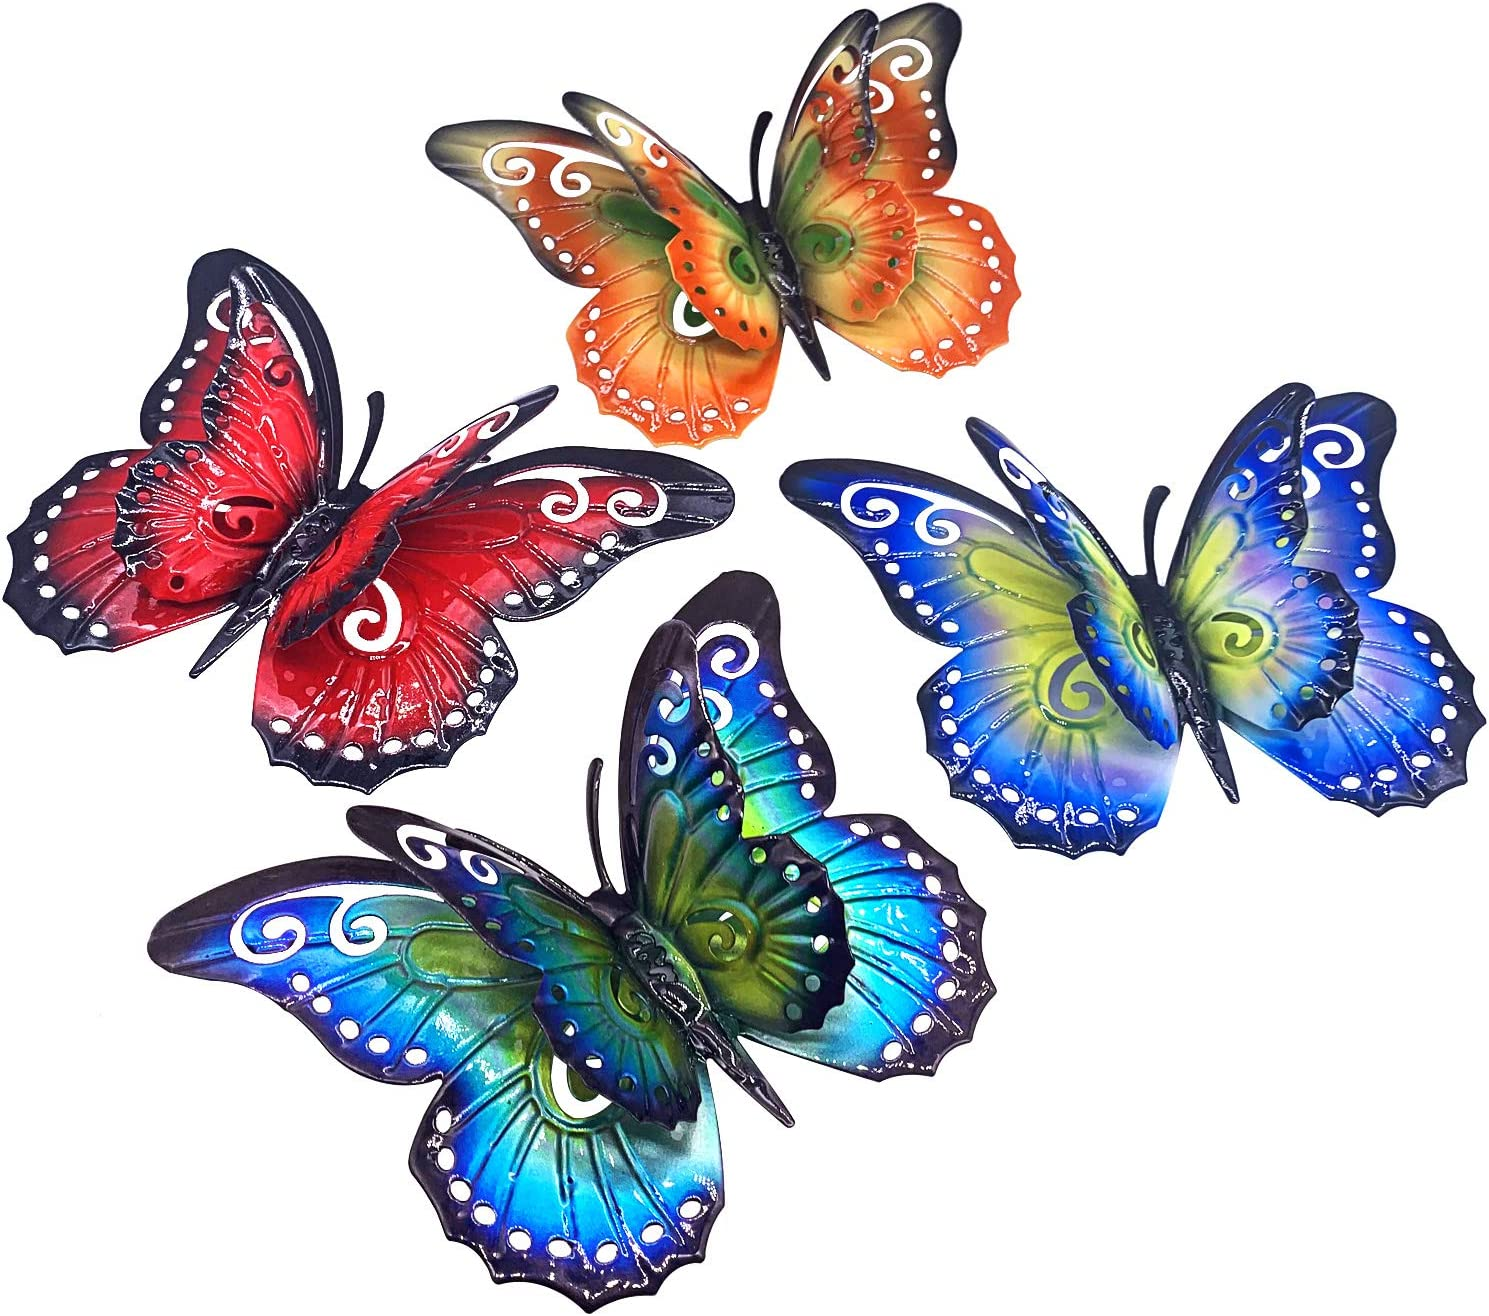 Metal Butterfly Wall Decor- 6.5'' 3D Metal Colorful Hanging Double Wings Butterflies for Garden Yard Decoration Outdoor or Indoor (4 Pack)